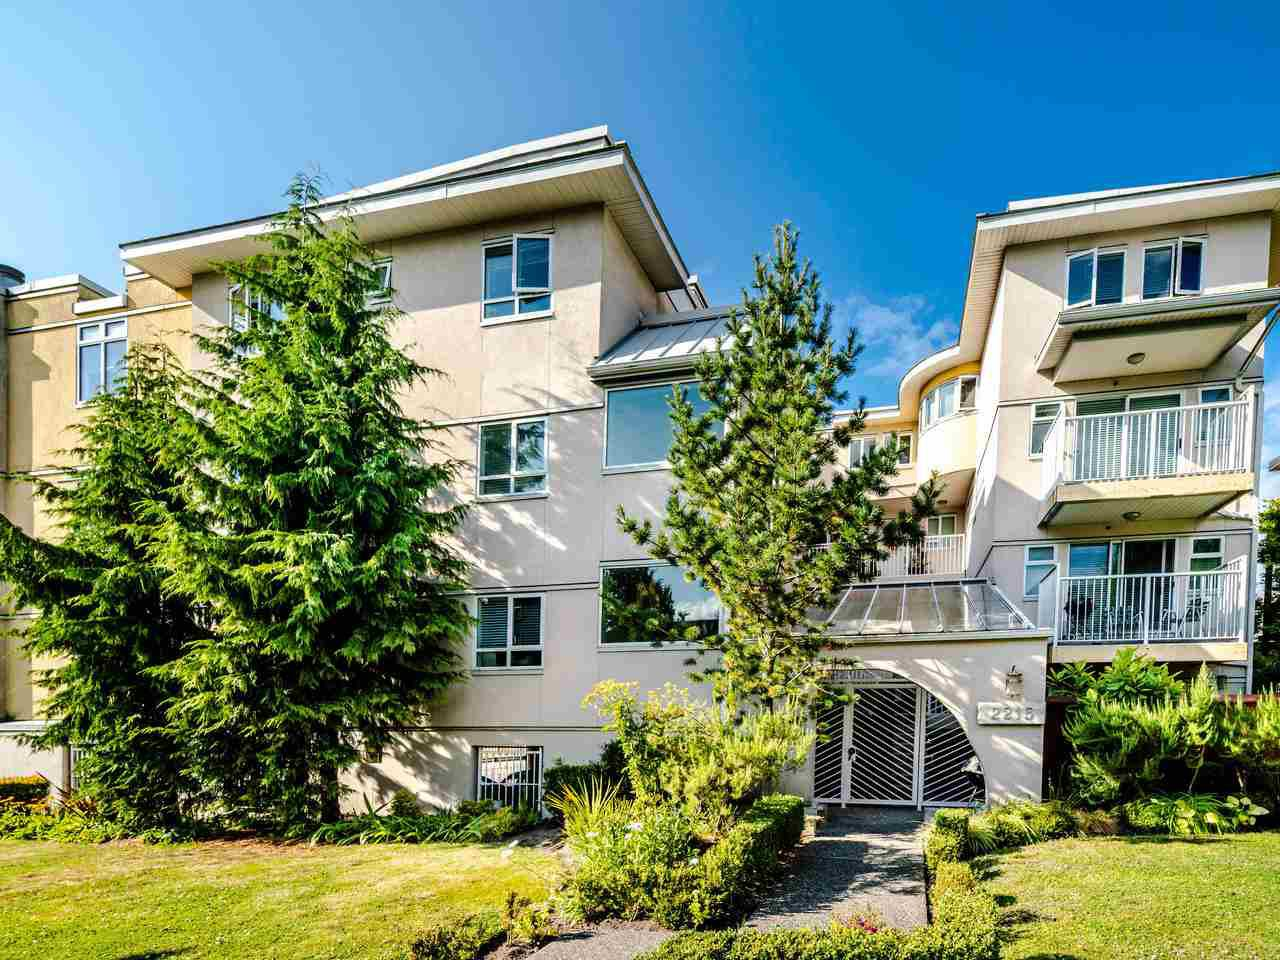 Main Photo: 303 2215 MCGILL Street in Vancouver: Hastings Condo for sale (Vancouver East)  : MLS®# R2487486